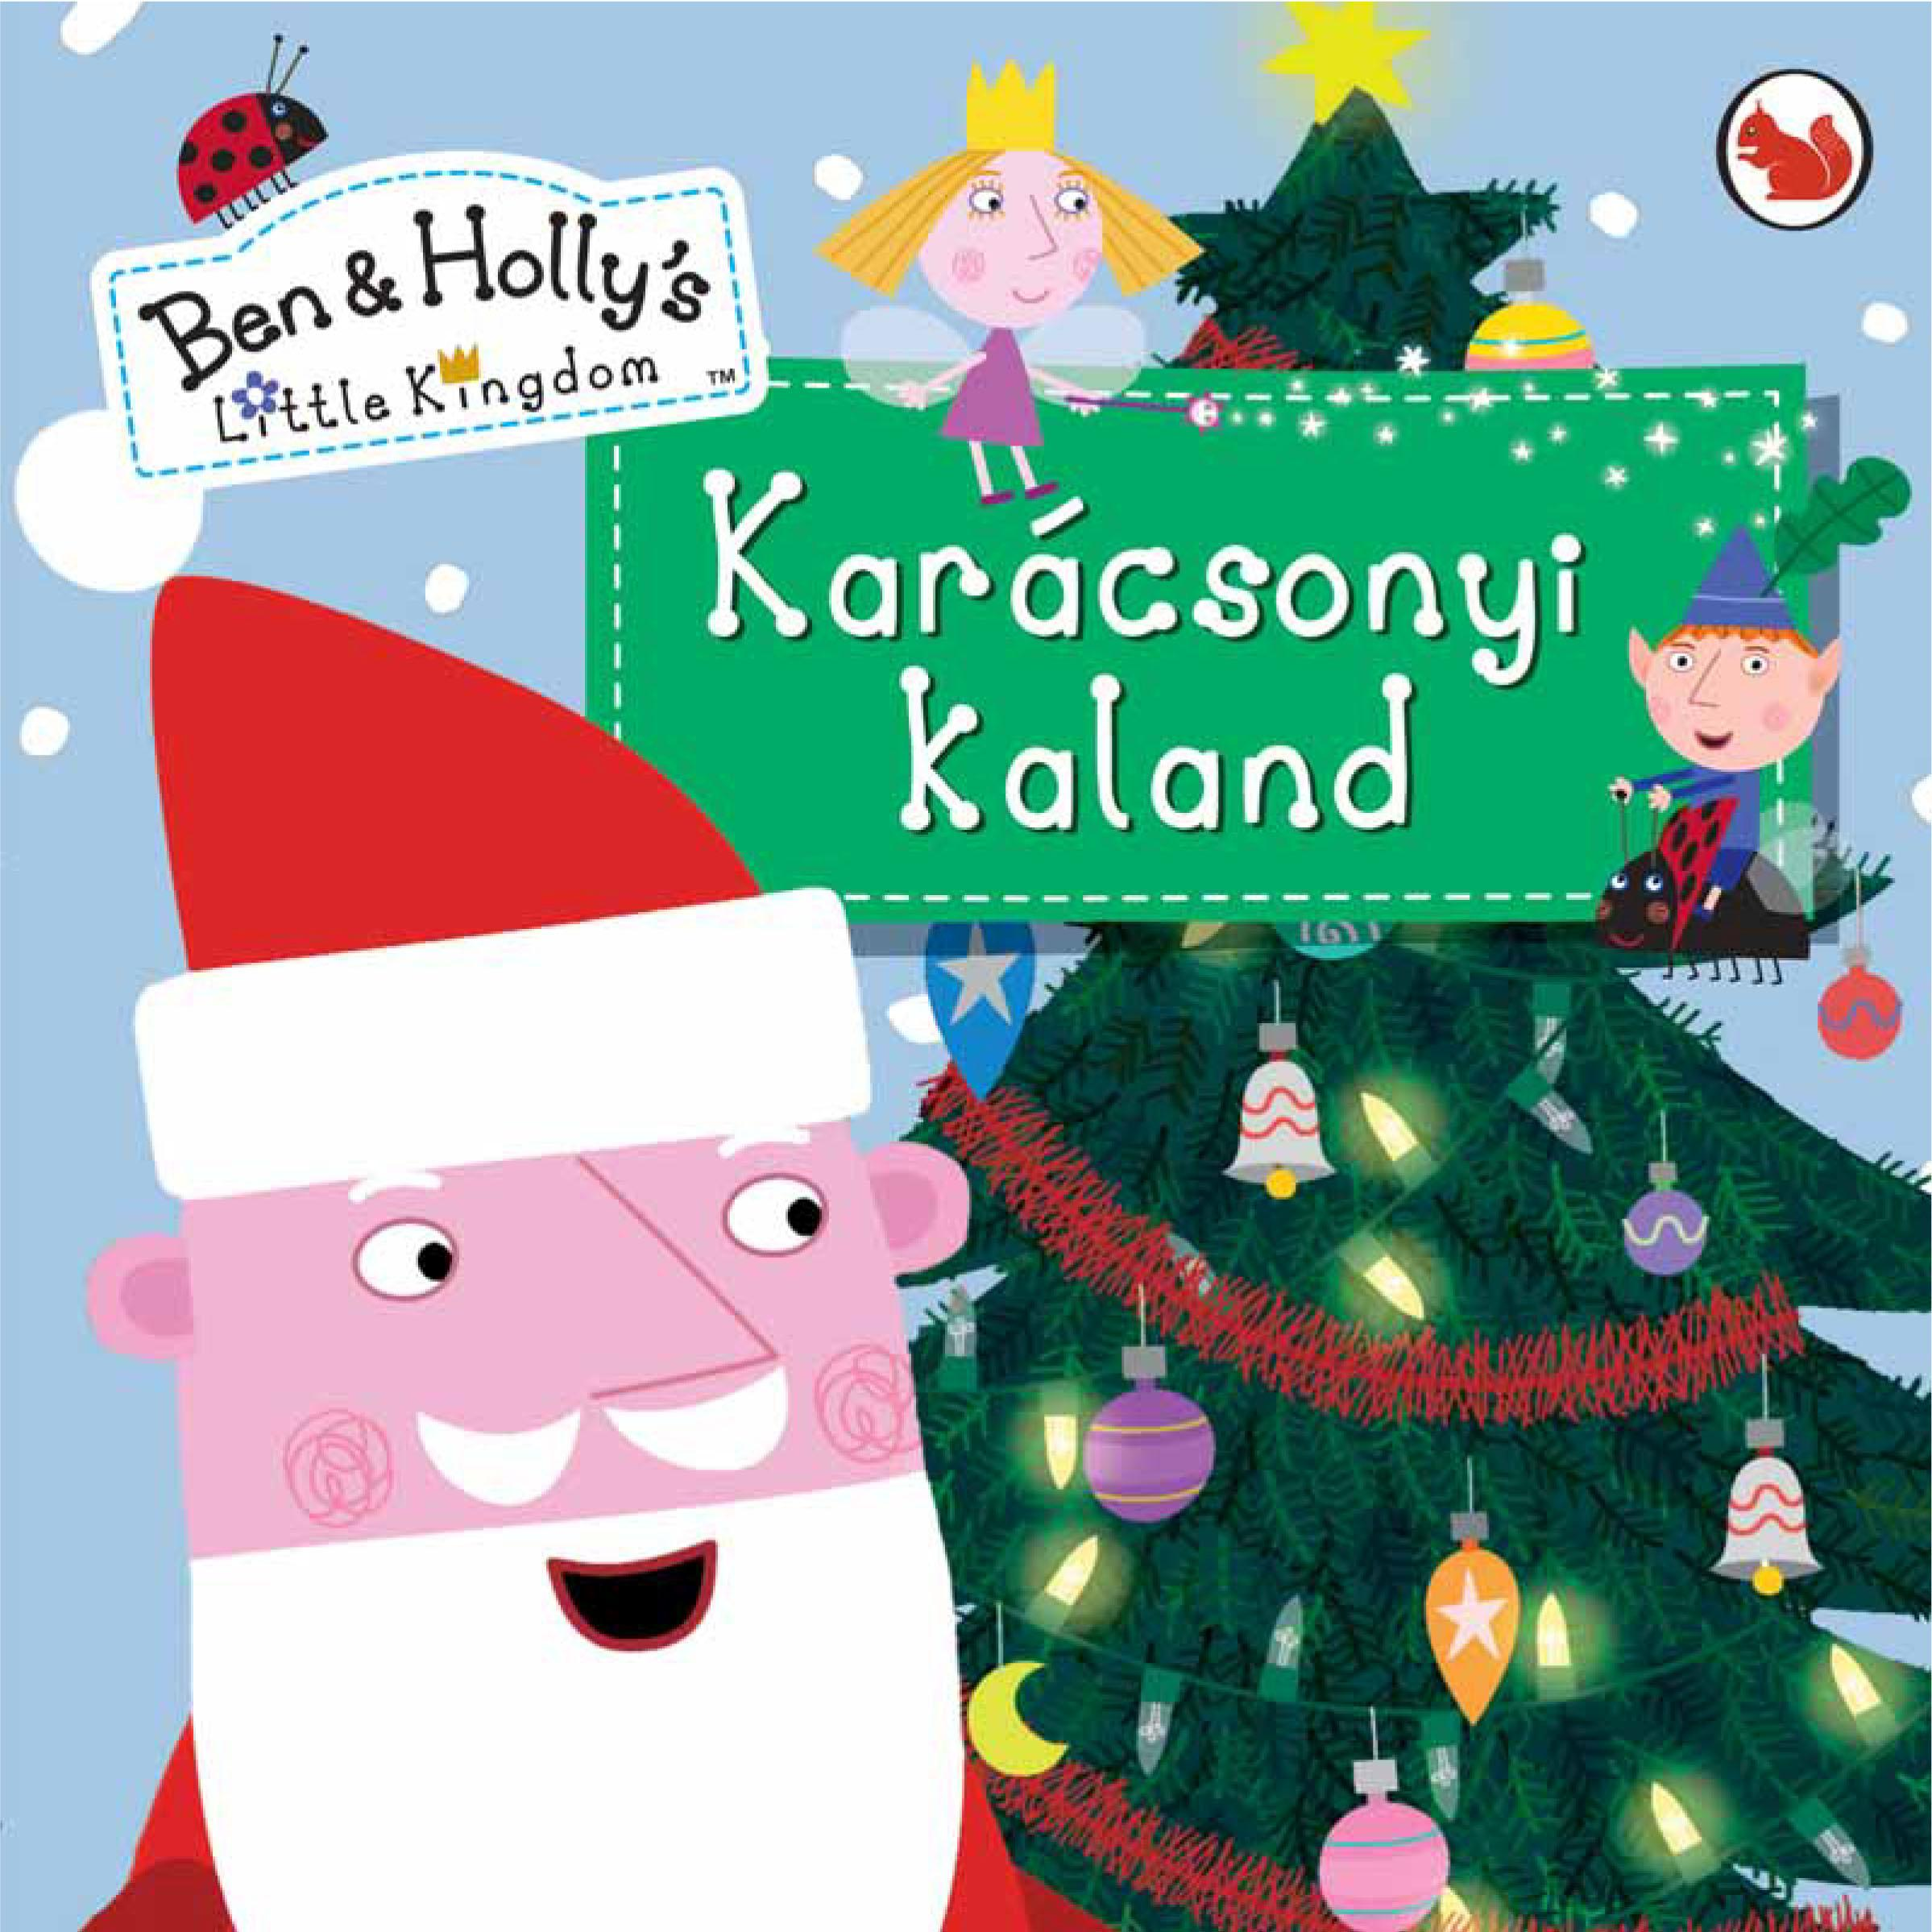 KARÁCSONYI KALAND - BEN & HOLLY'S LITTLE KINGDOM